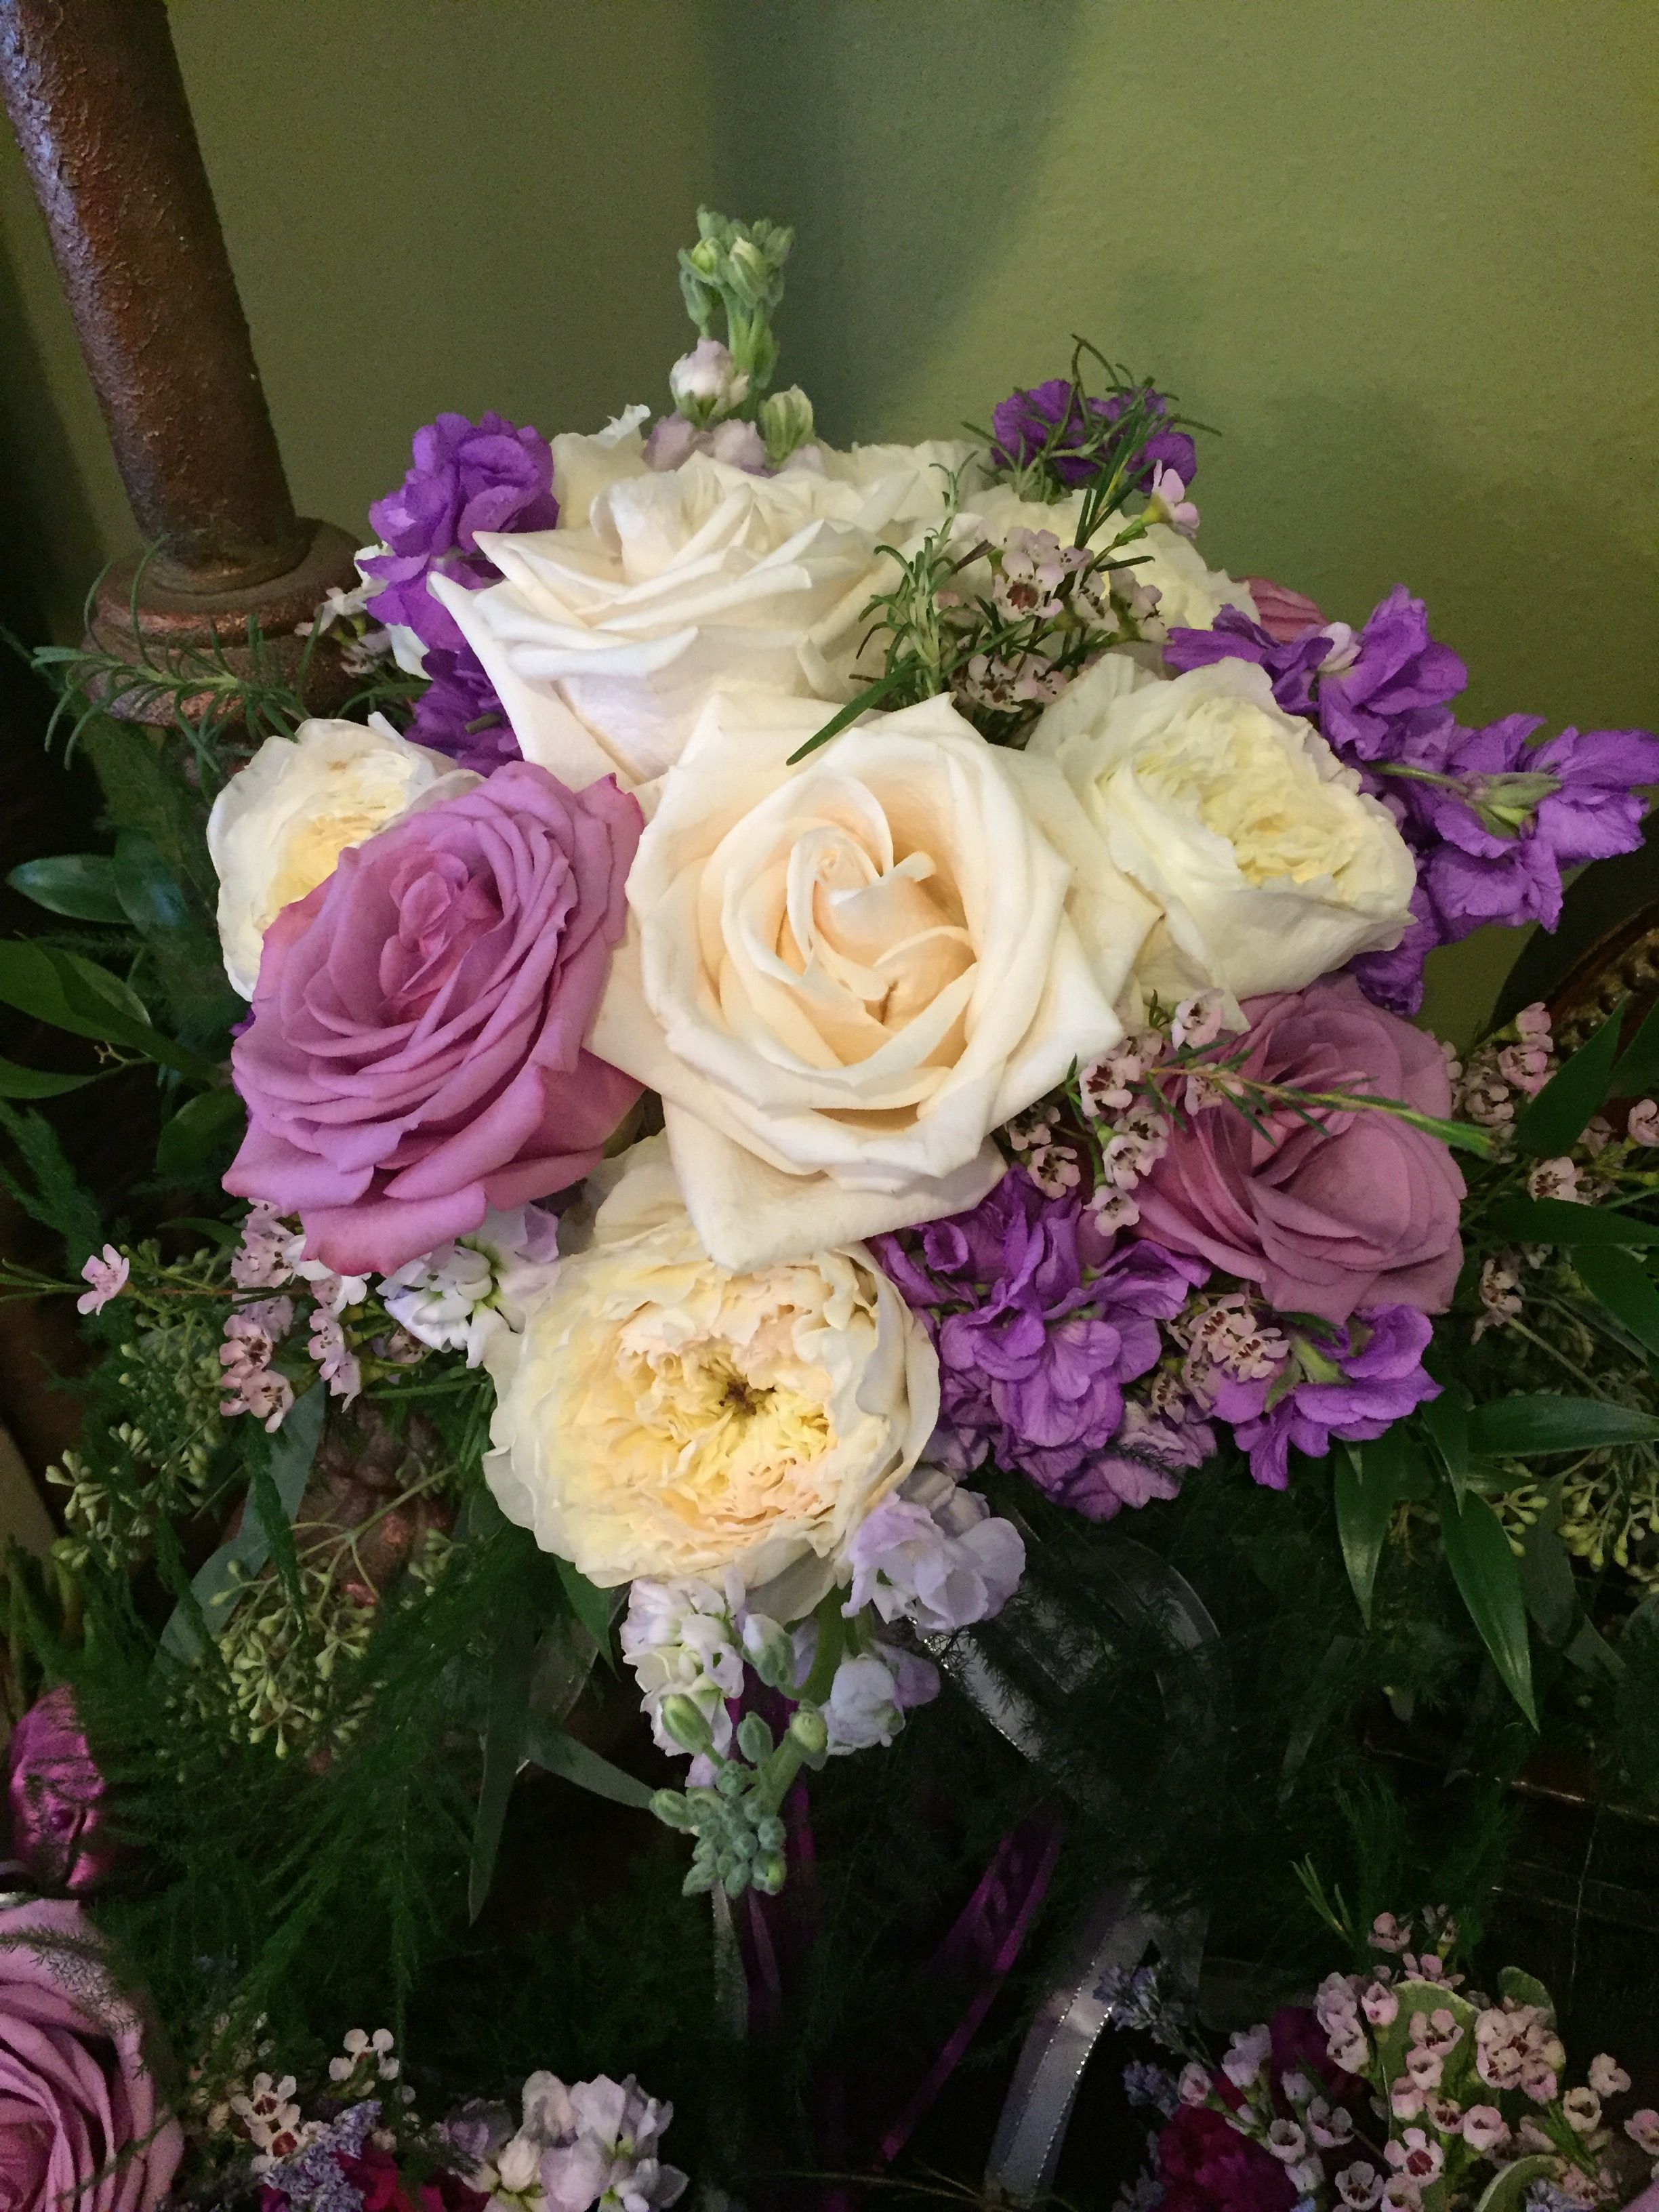 Lavender roses white roses sweet pea and wax flower bouquet by lavender roses white roses sweet pea and wax flower bouquet by alta fleura izmirmasajfo